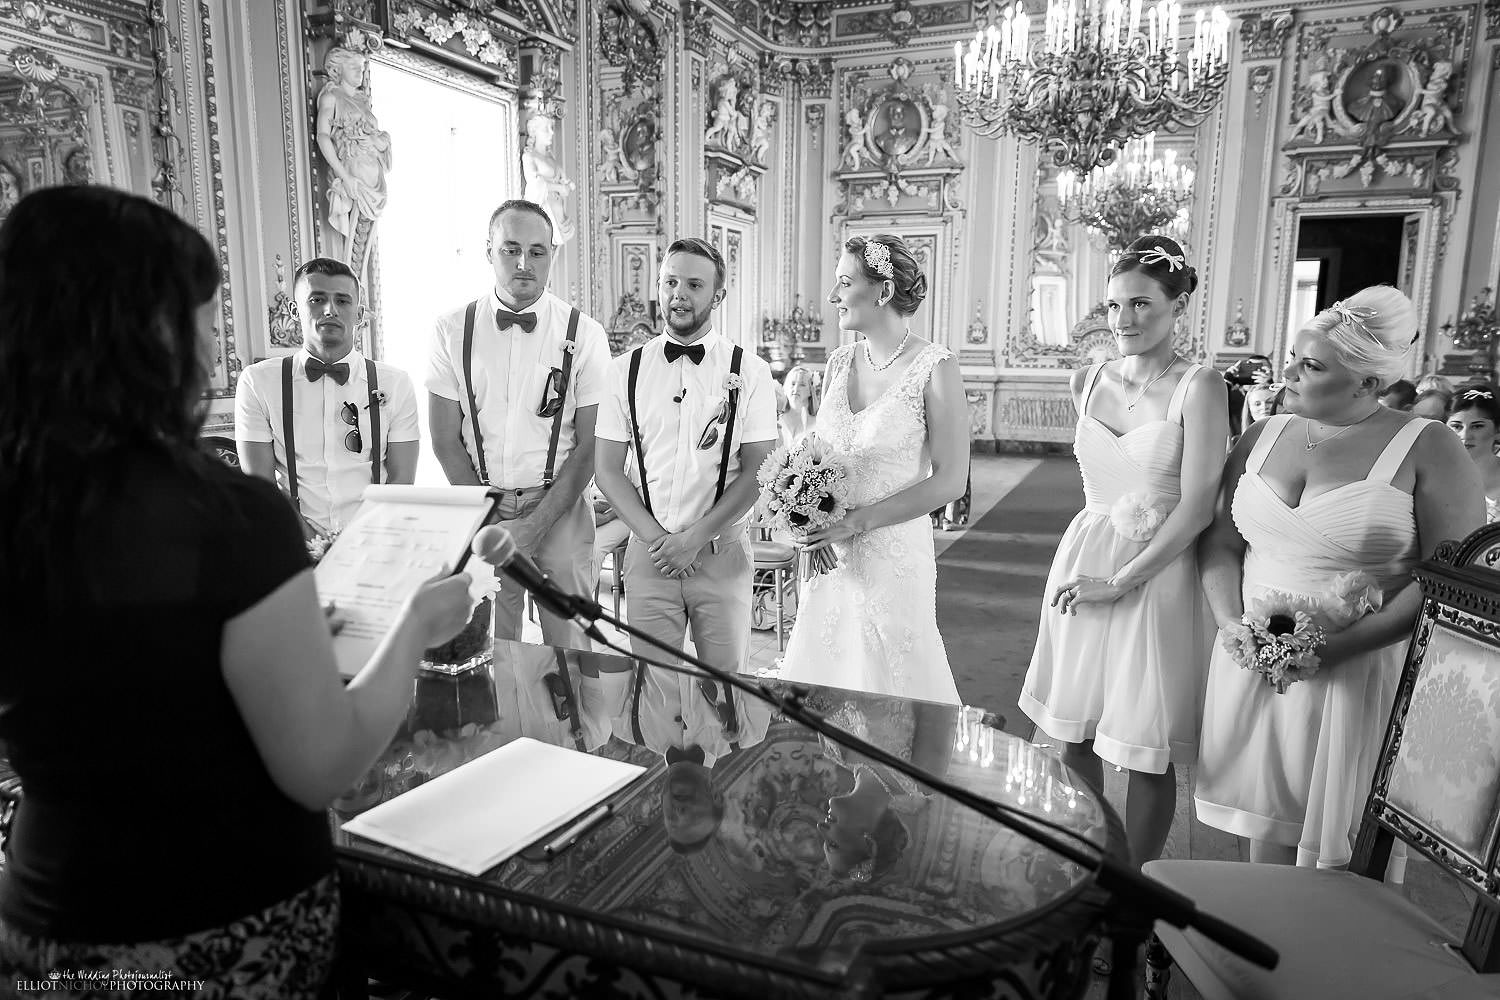 Bride, groom and their witnesses during the wedding ceremony in the Ballroom of the Palazzo Parisio, Malta.